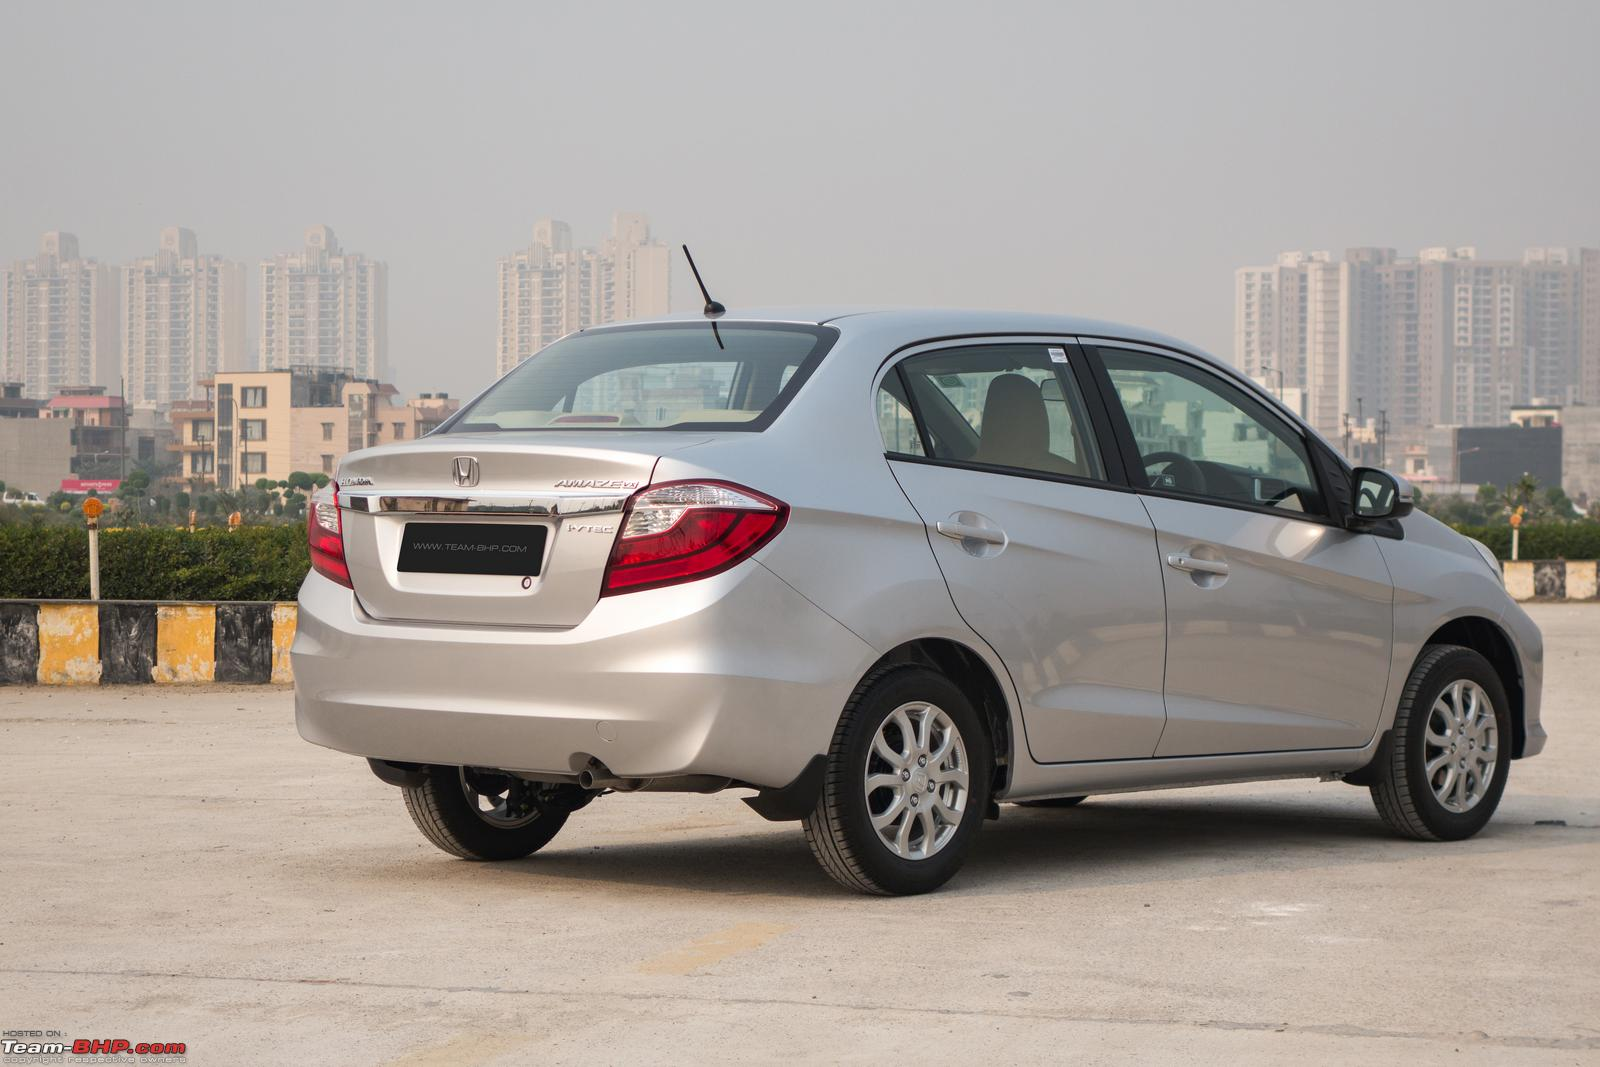 3 years into the life cycle is about the right time for a facelift the amaze is an important car for honda and its no 2 product in india city is no 1